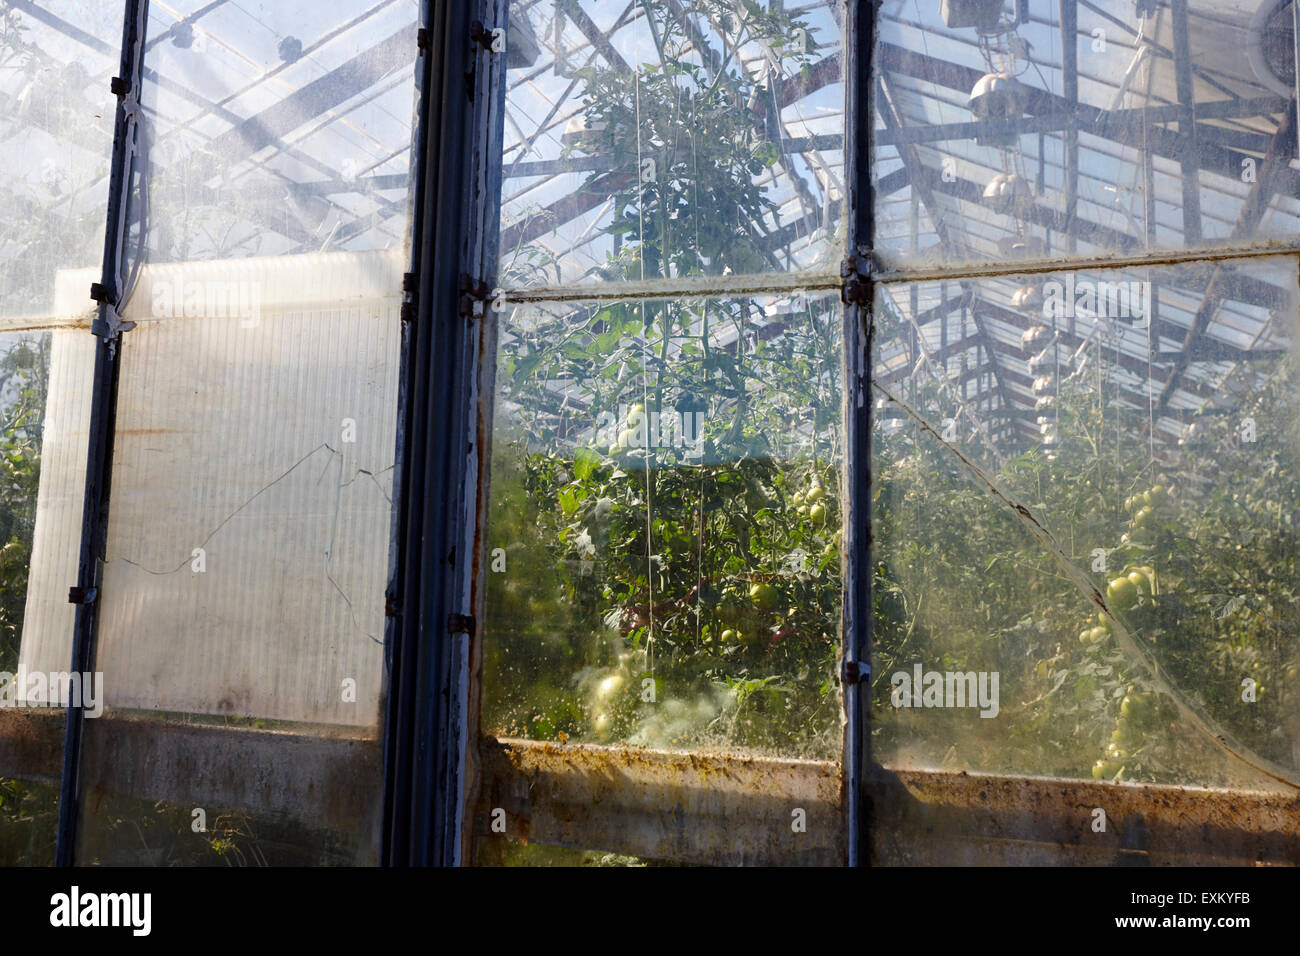 illuminated greenhouses heated by geothermal energy for growing tomatoes indoor farm Hveragerdi iceland - Stock Image